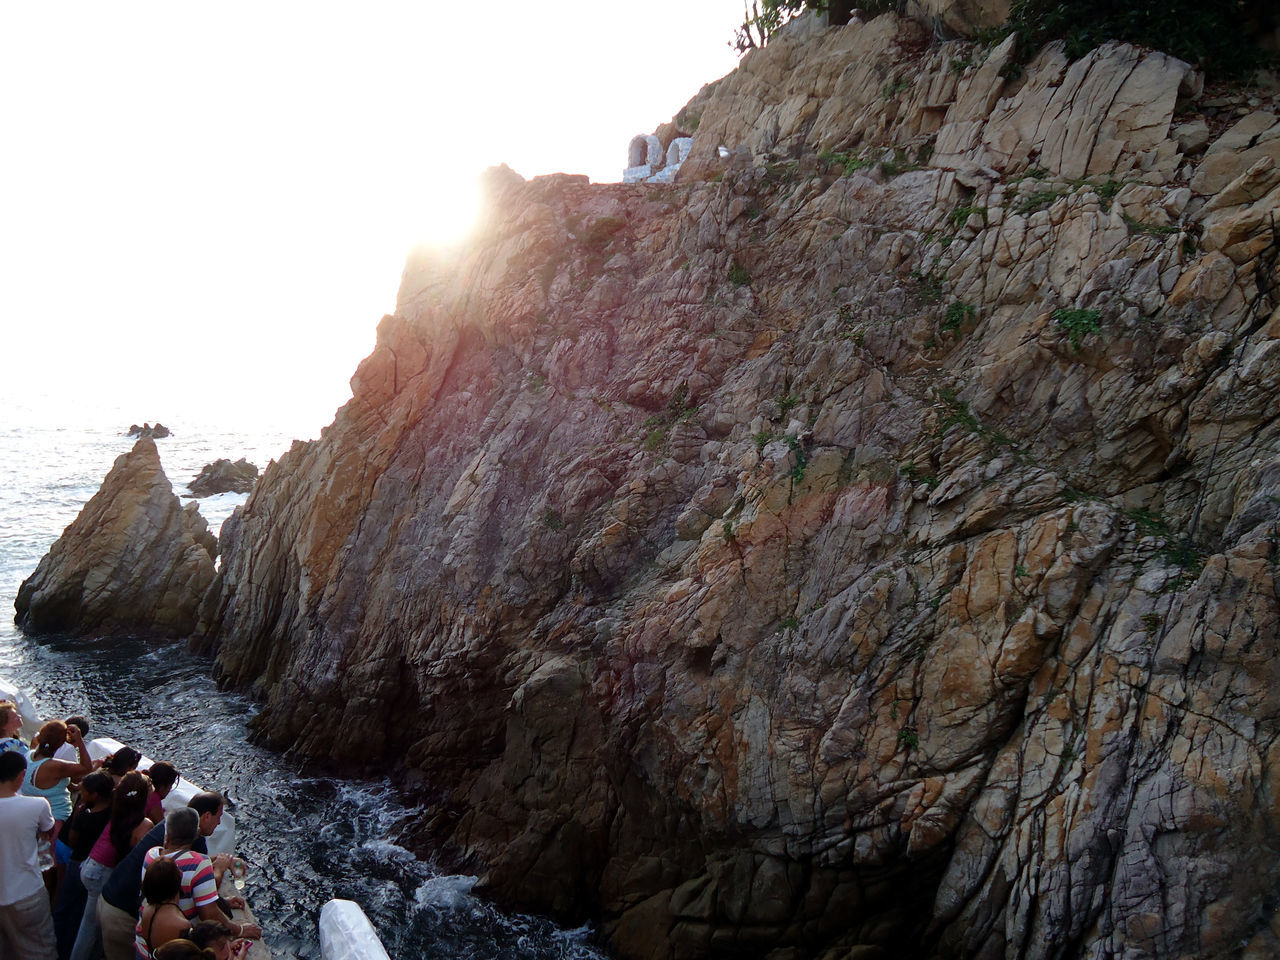 Acapulco Adventure Cliff Desert Eroded Exploring Extreme Terrain Geology Mar Physical Geography Quebrada Acapulco Rock Rock - Object Rock Formation Rocky Rocky Mountains Rough Rugged Stone Textured  EyeEmNewHere Live For The Story